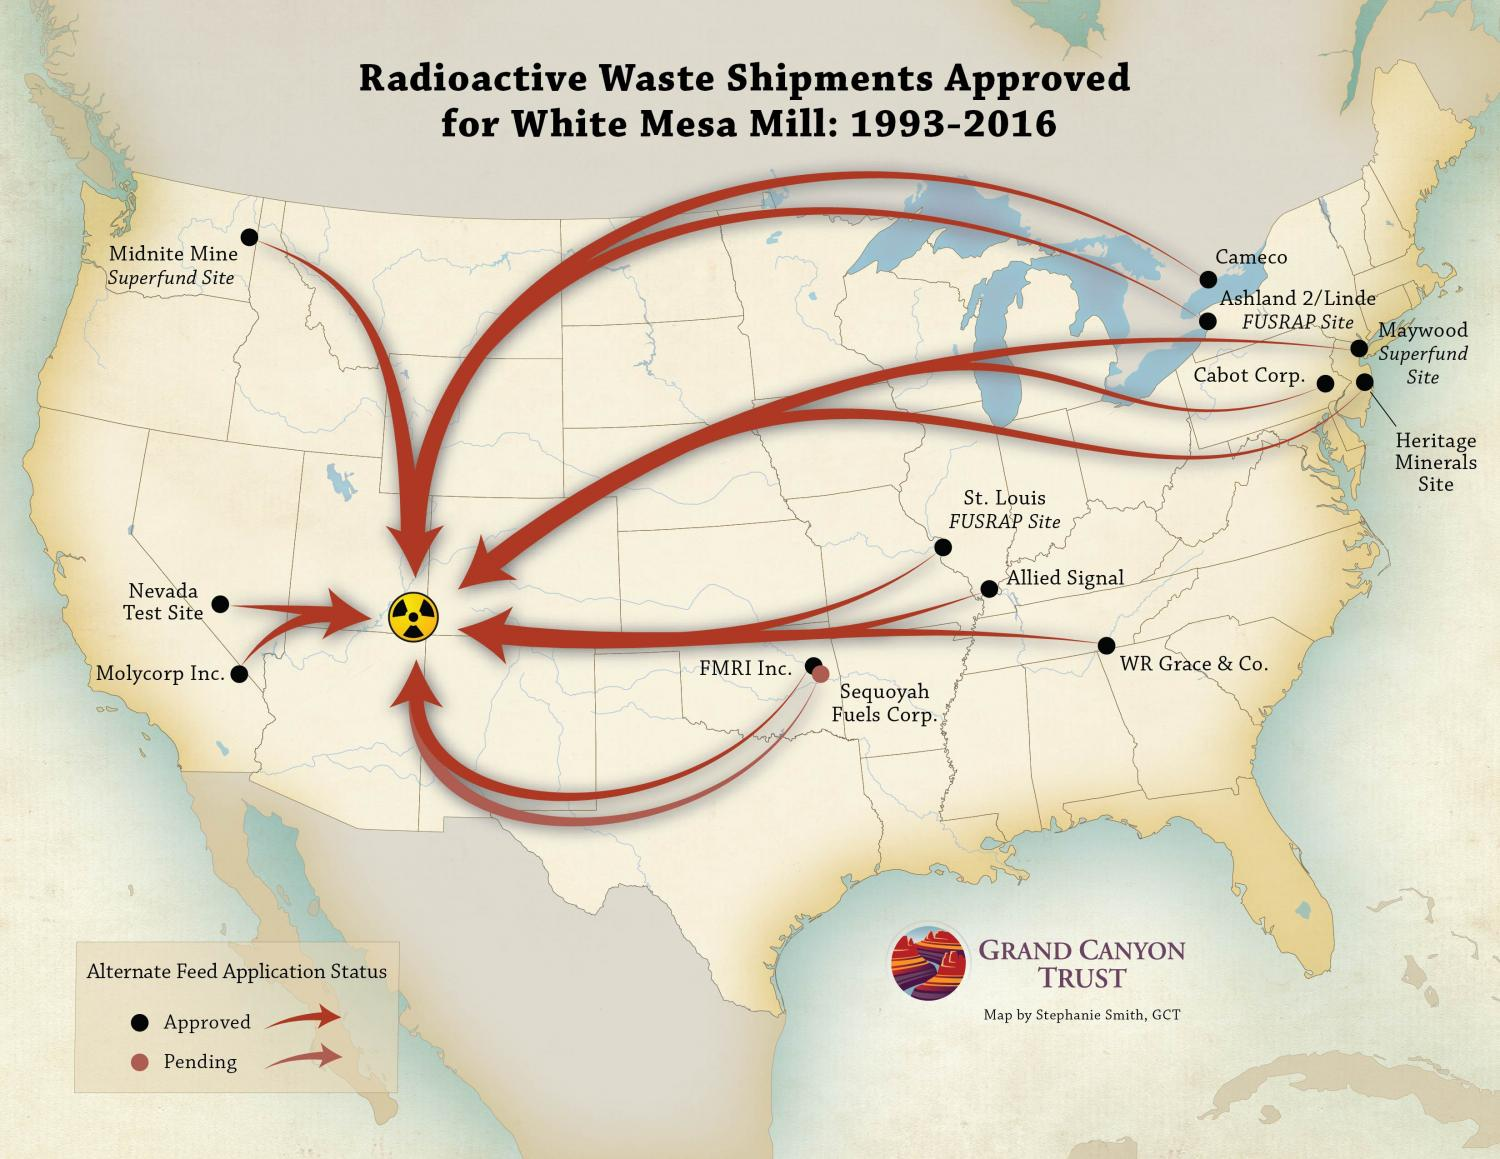 Radioactive Waste Shipments to White Mesa Mill Grand Canyon Trust